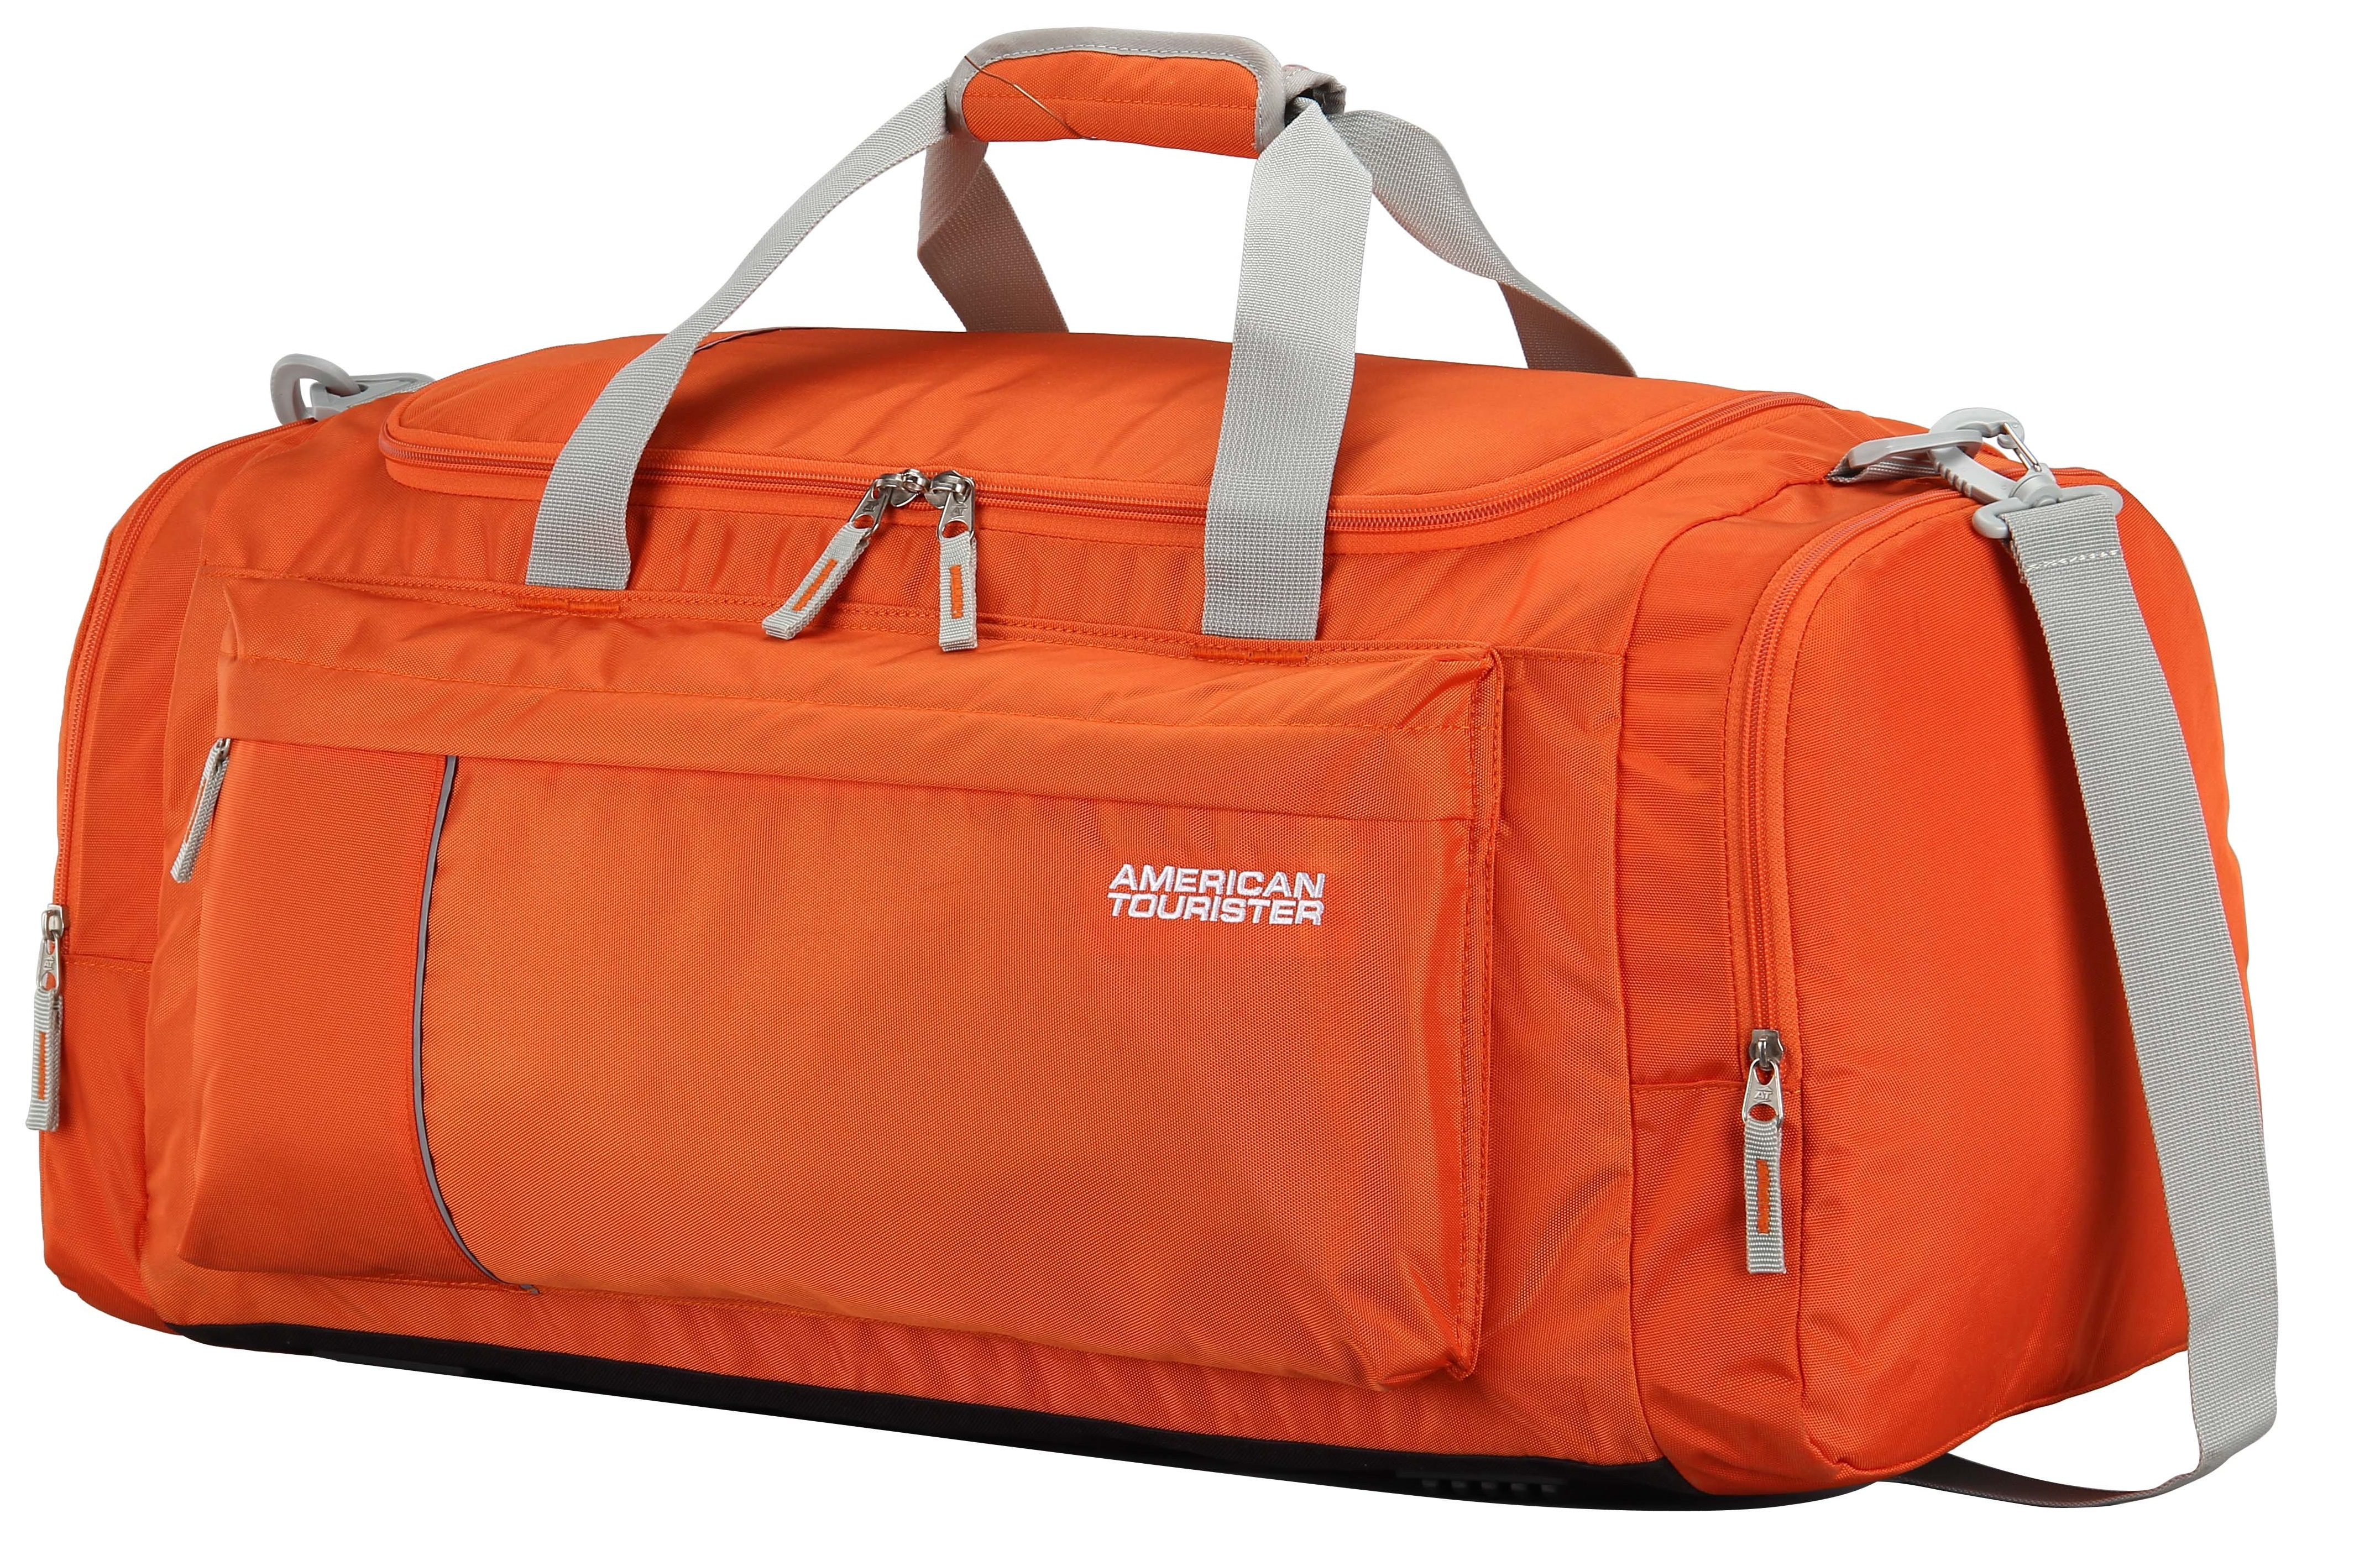 Duffle Travel Bags Online